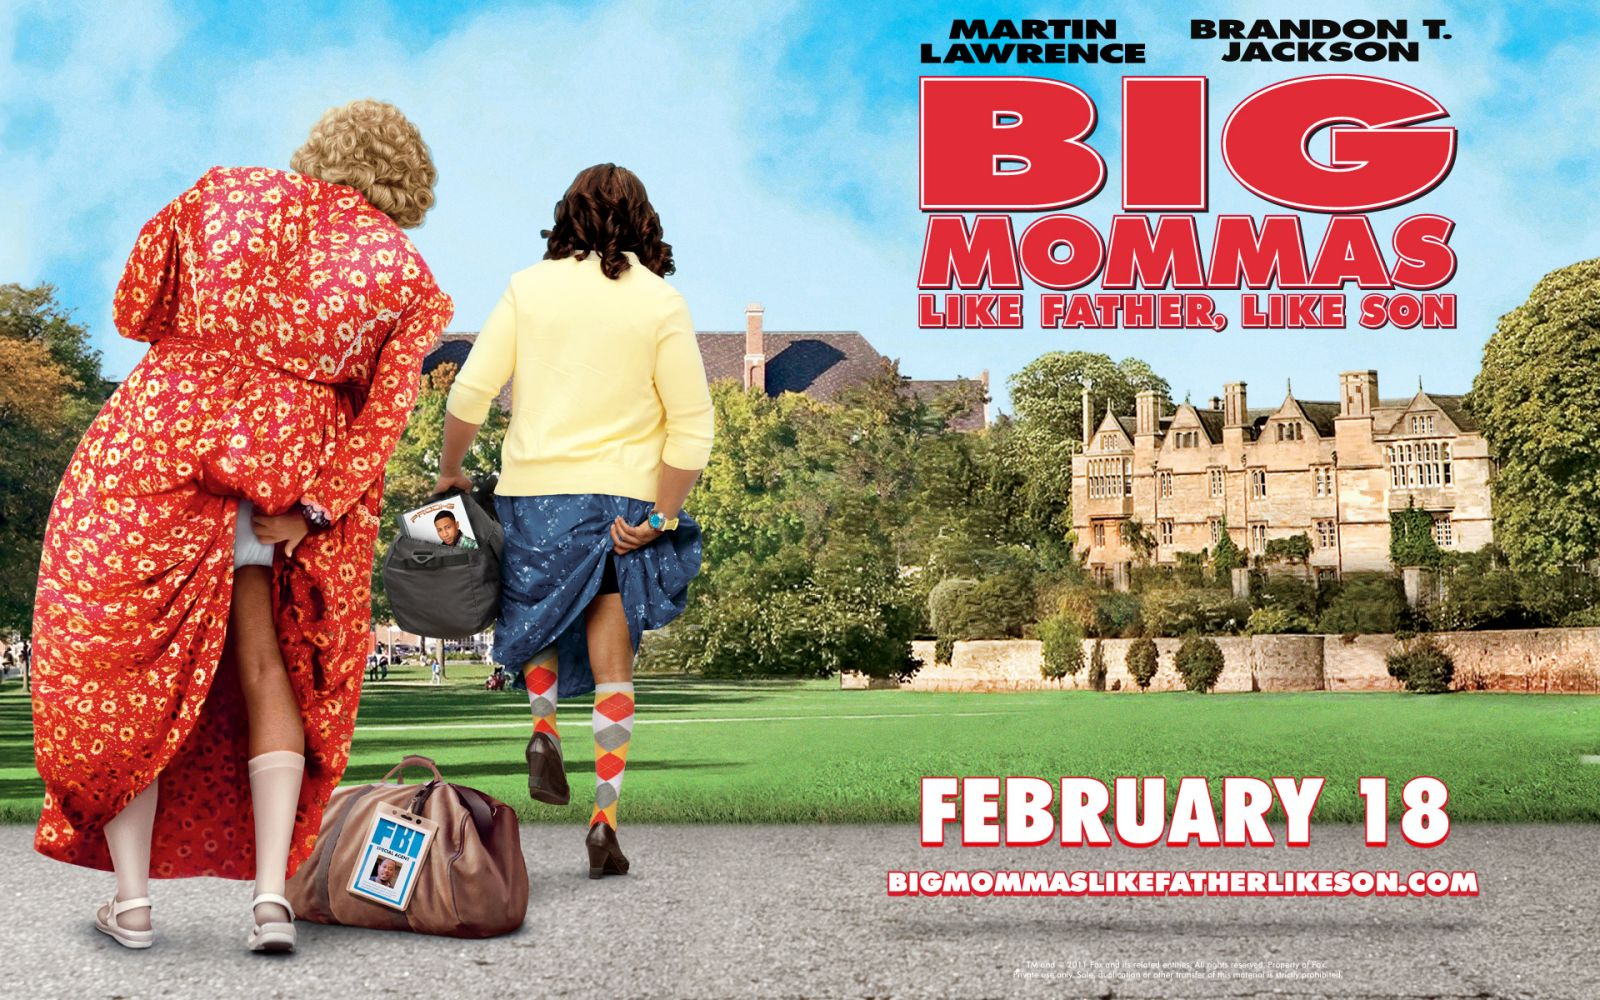 Big Mommas: Like Father, Like Son Backgrounds, Compatible - PC, Mobile, Gadgets| 1600x1000 px